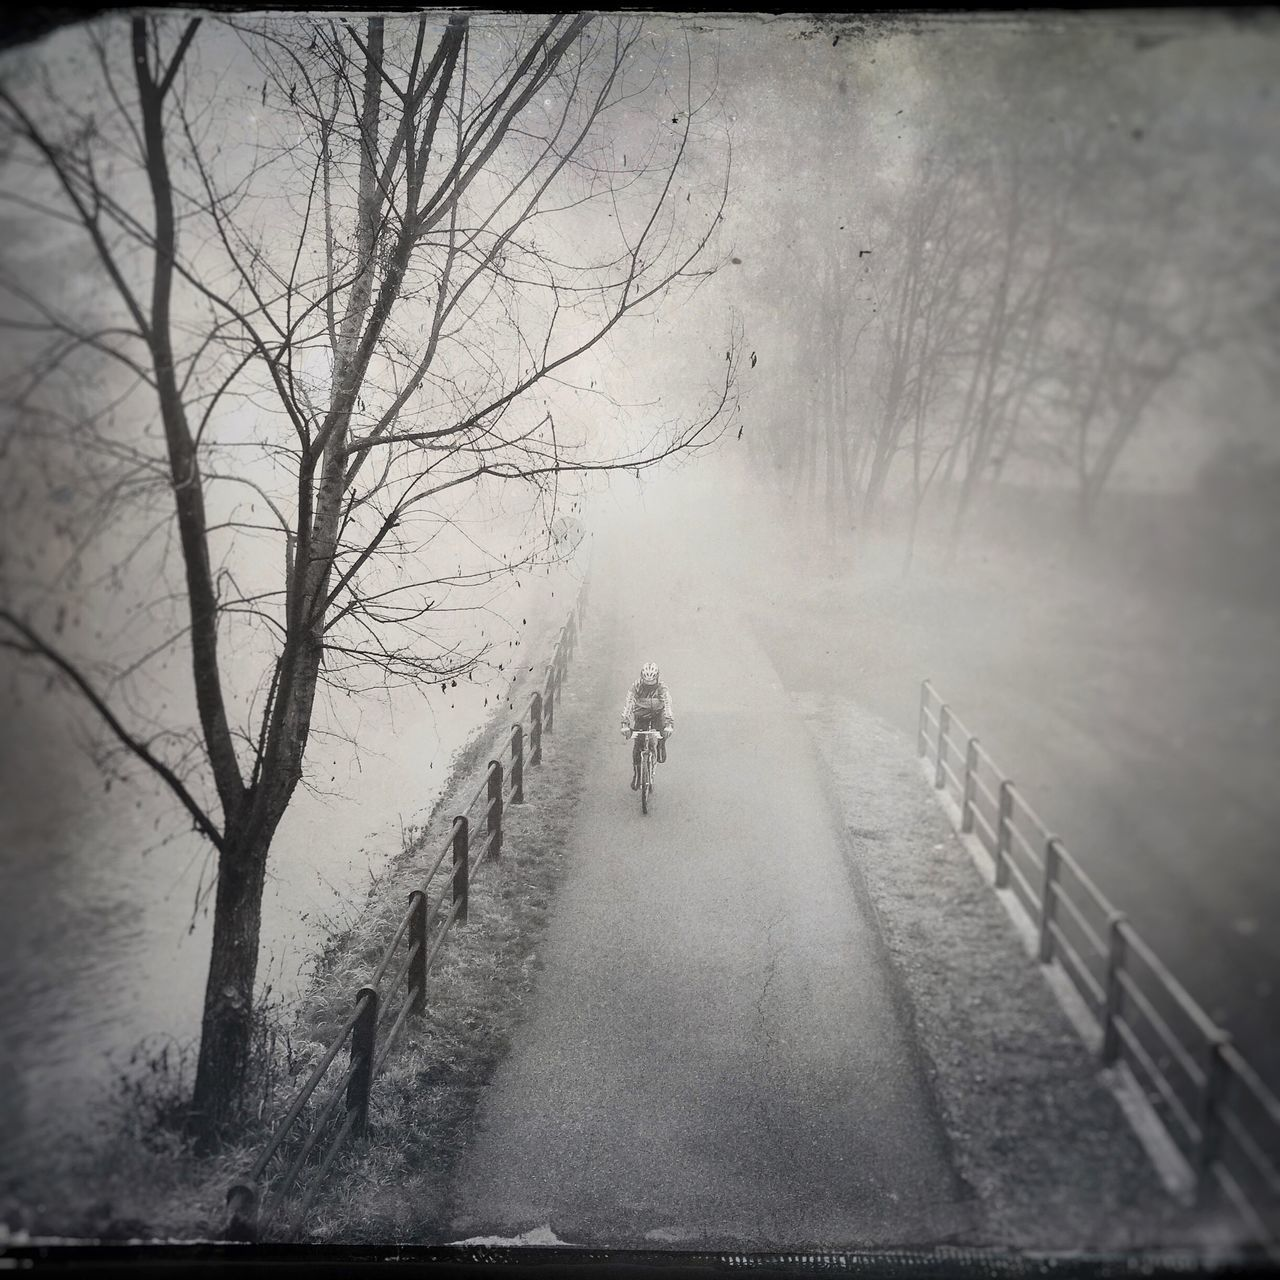 High Angle View Of Person Riding Bicycle On Footpath During Foggy Weather